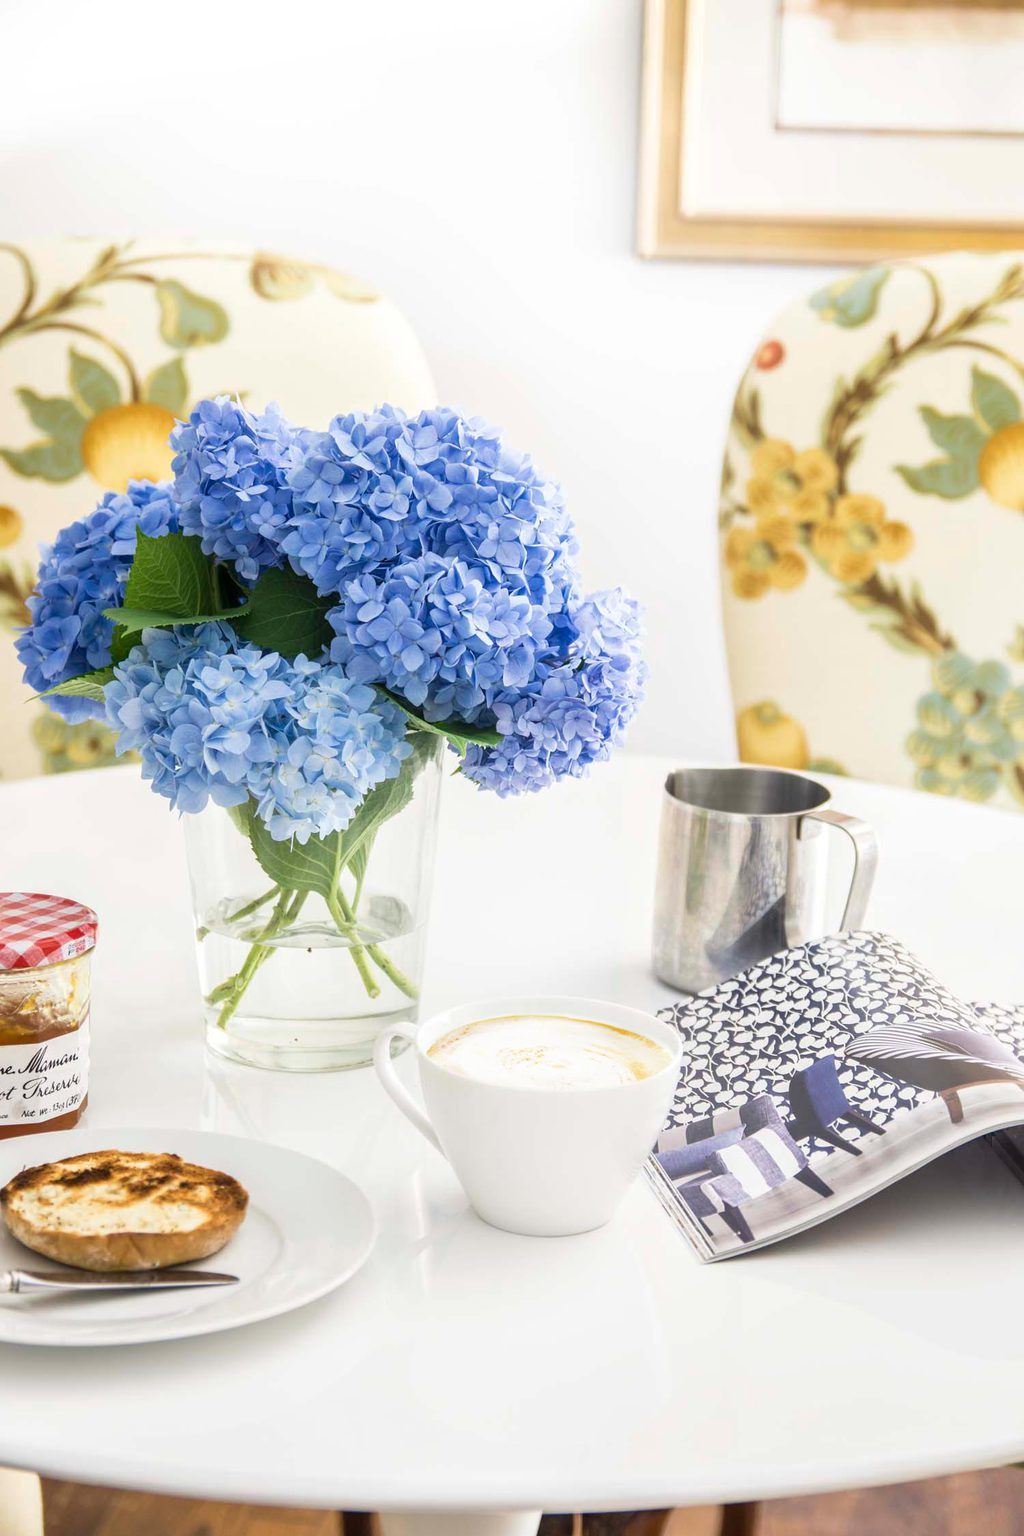 Morning breakfast with blue hydrangeas and Hive smart home devices on Thou Swell @thouswellblog